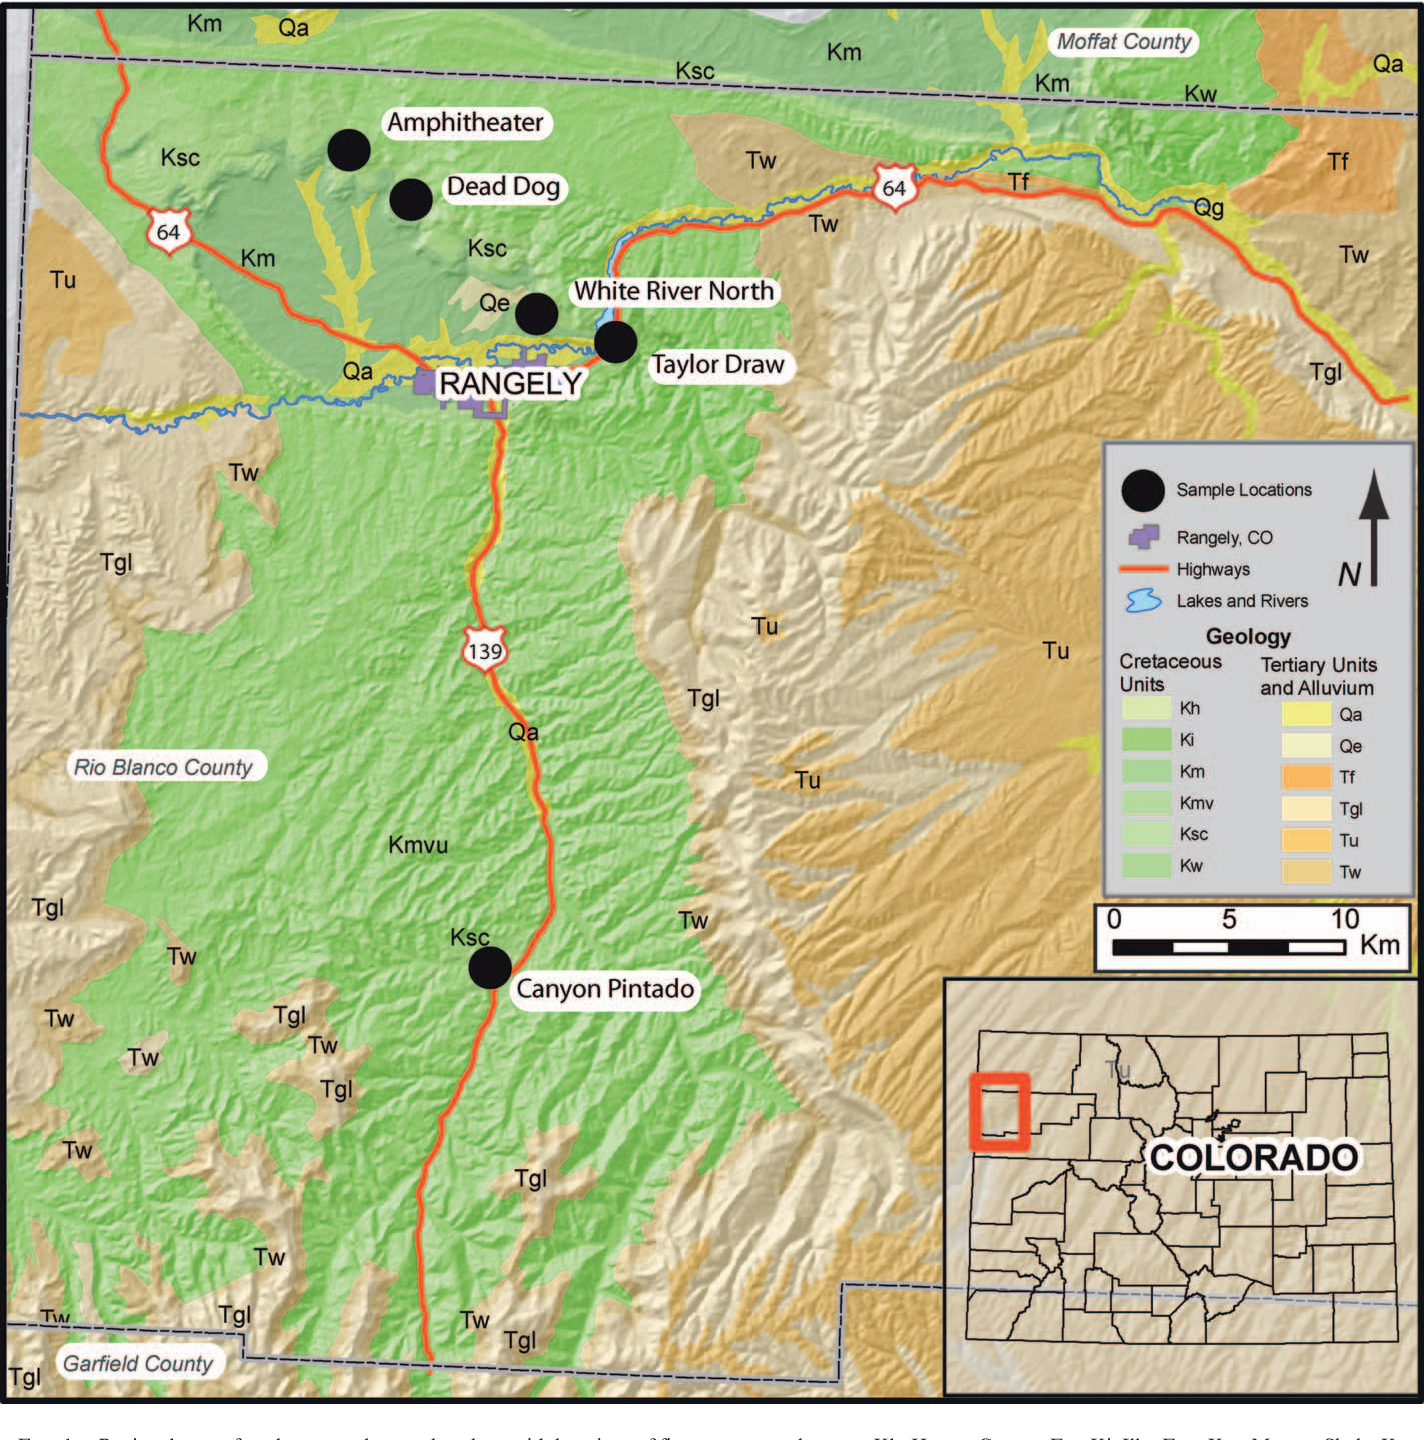 Nw Colorado Map.Figure 1 From Sedimentological Characterization Of The Sego